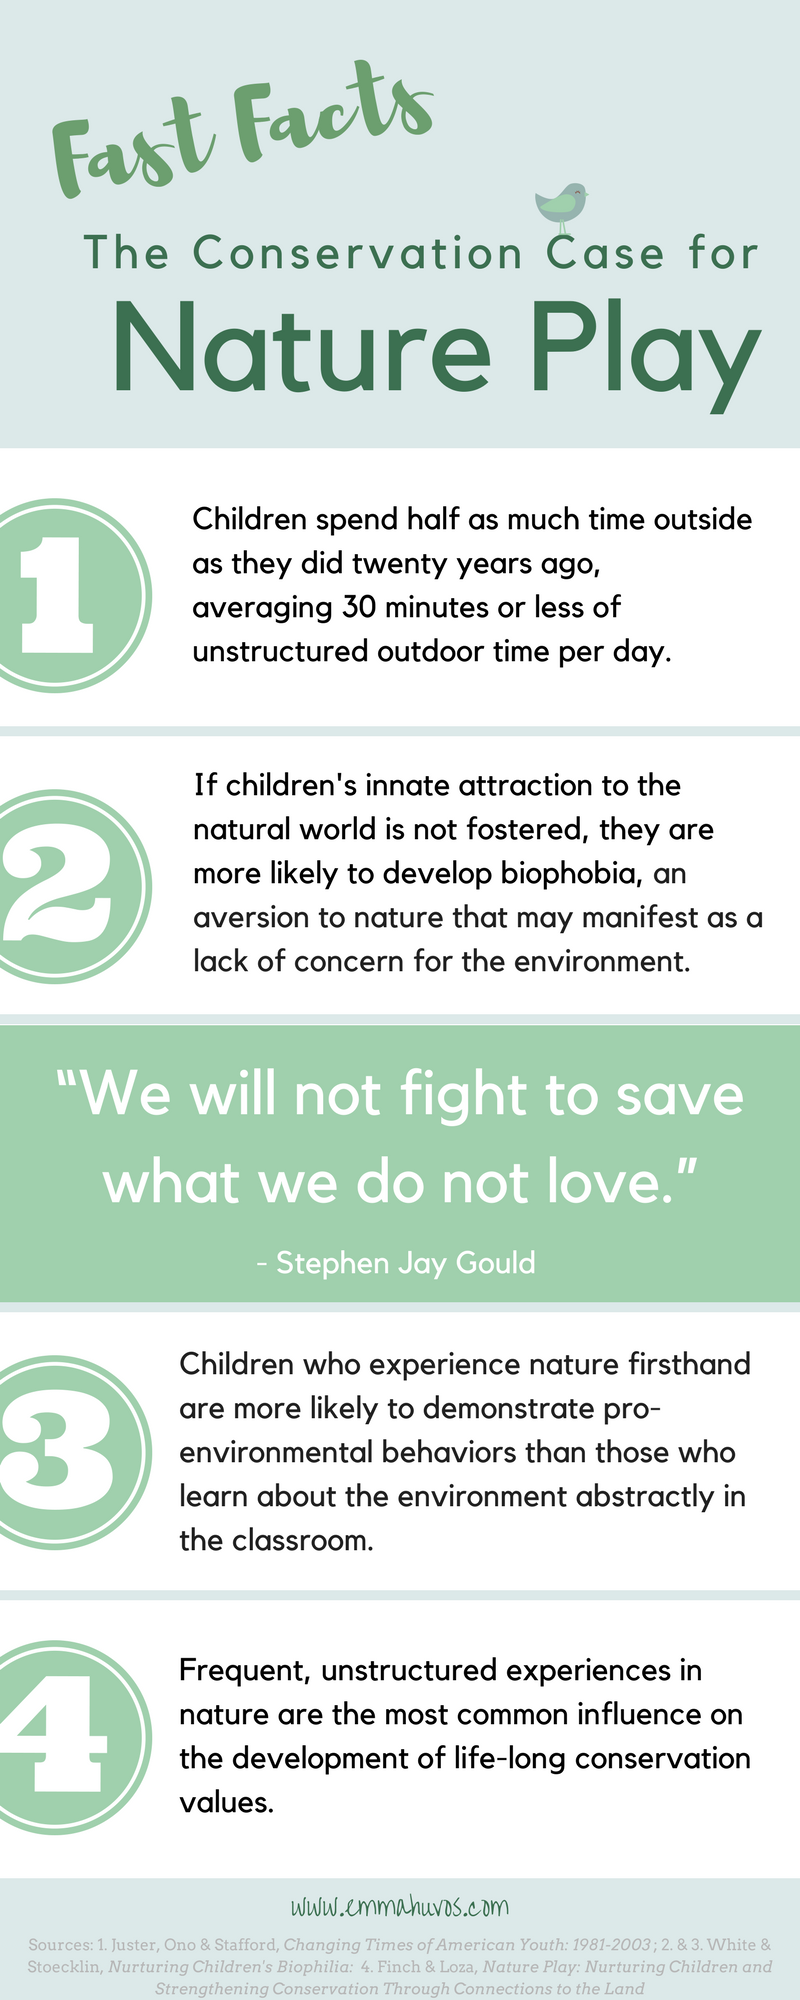 The Conservation Case for Nature Play